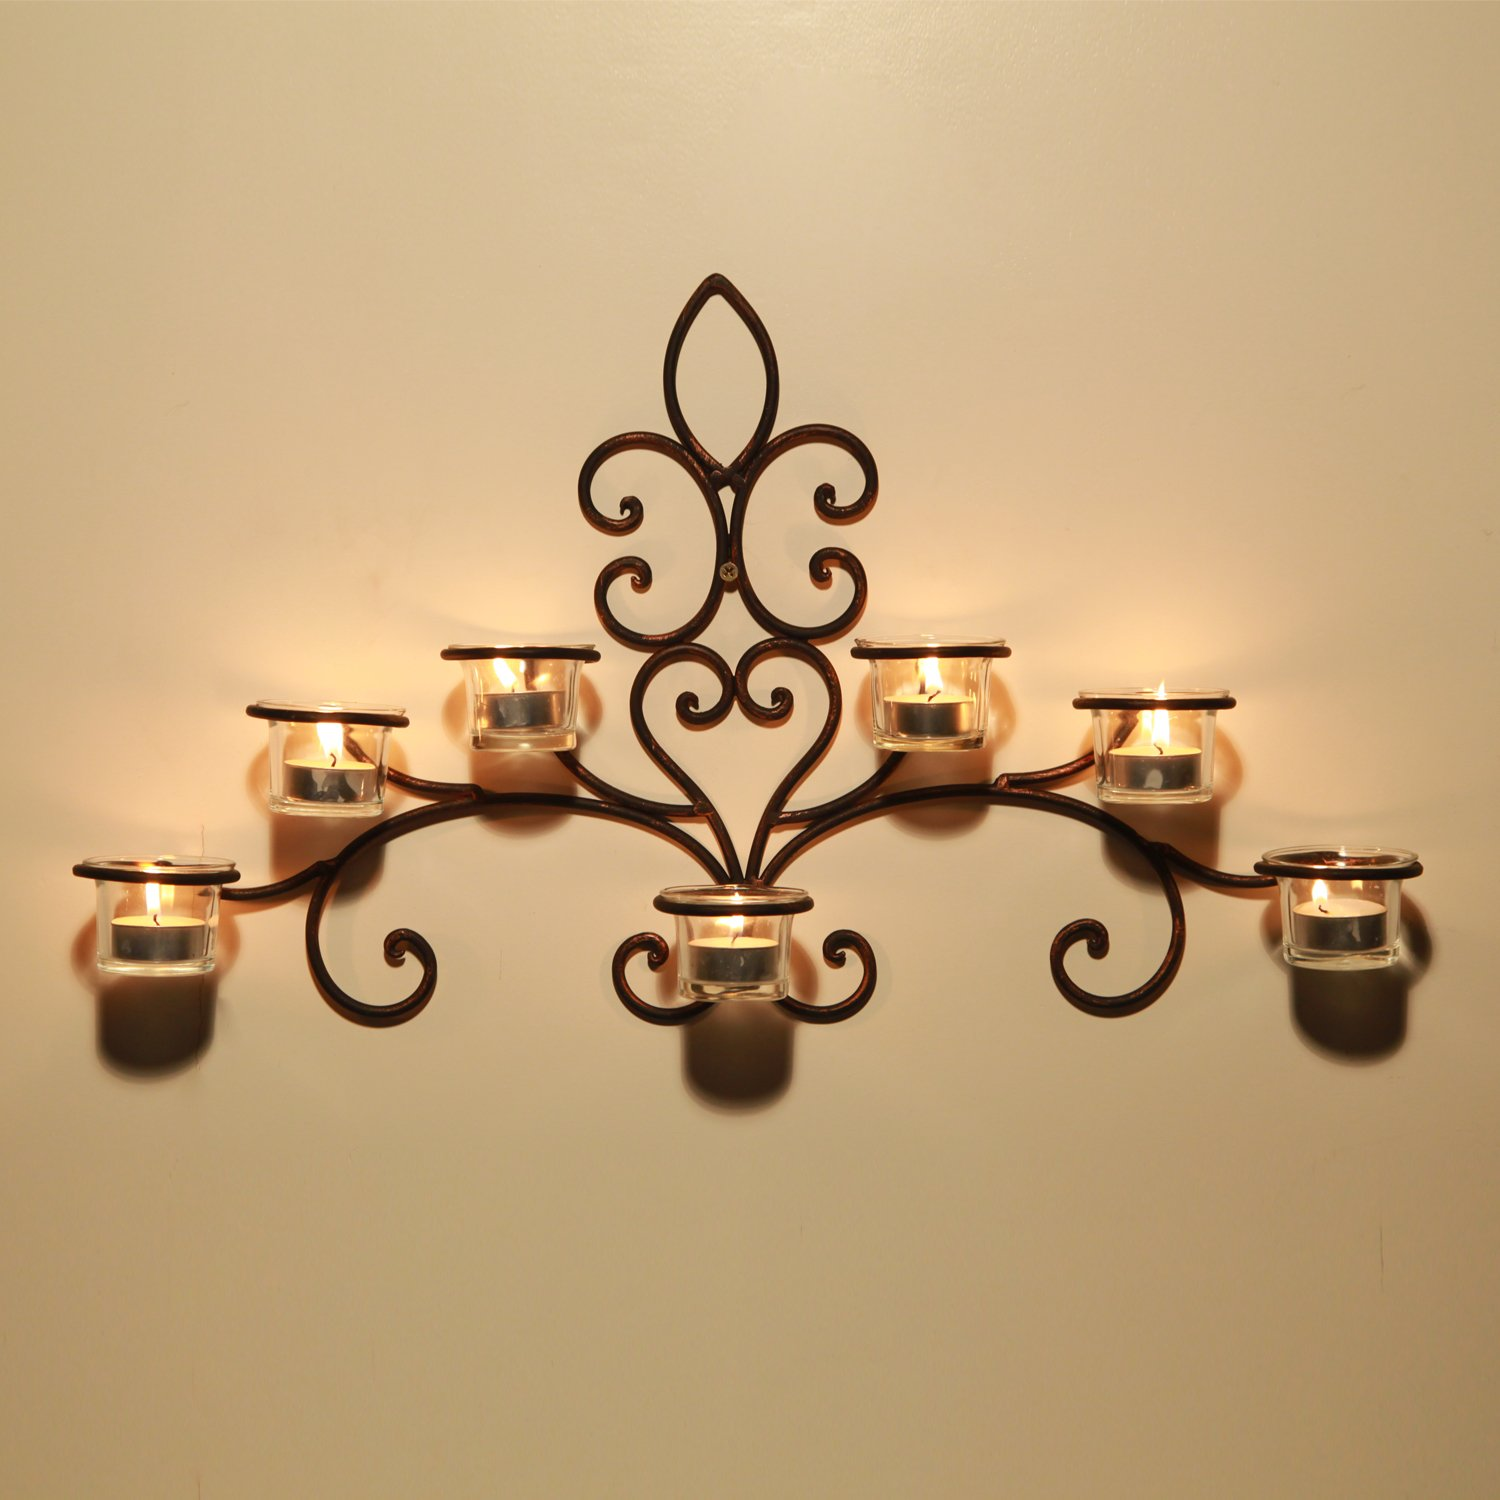 Wall sconces candle amazoncom gifts u0026 decor bedazzling amazoncom adeco hd0012 iron u0026 glass horizontal wall hanging candle holder sconce scolled vine detail holds 7 tea lights black with antique finish home mozeypictures Images